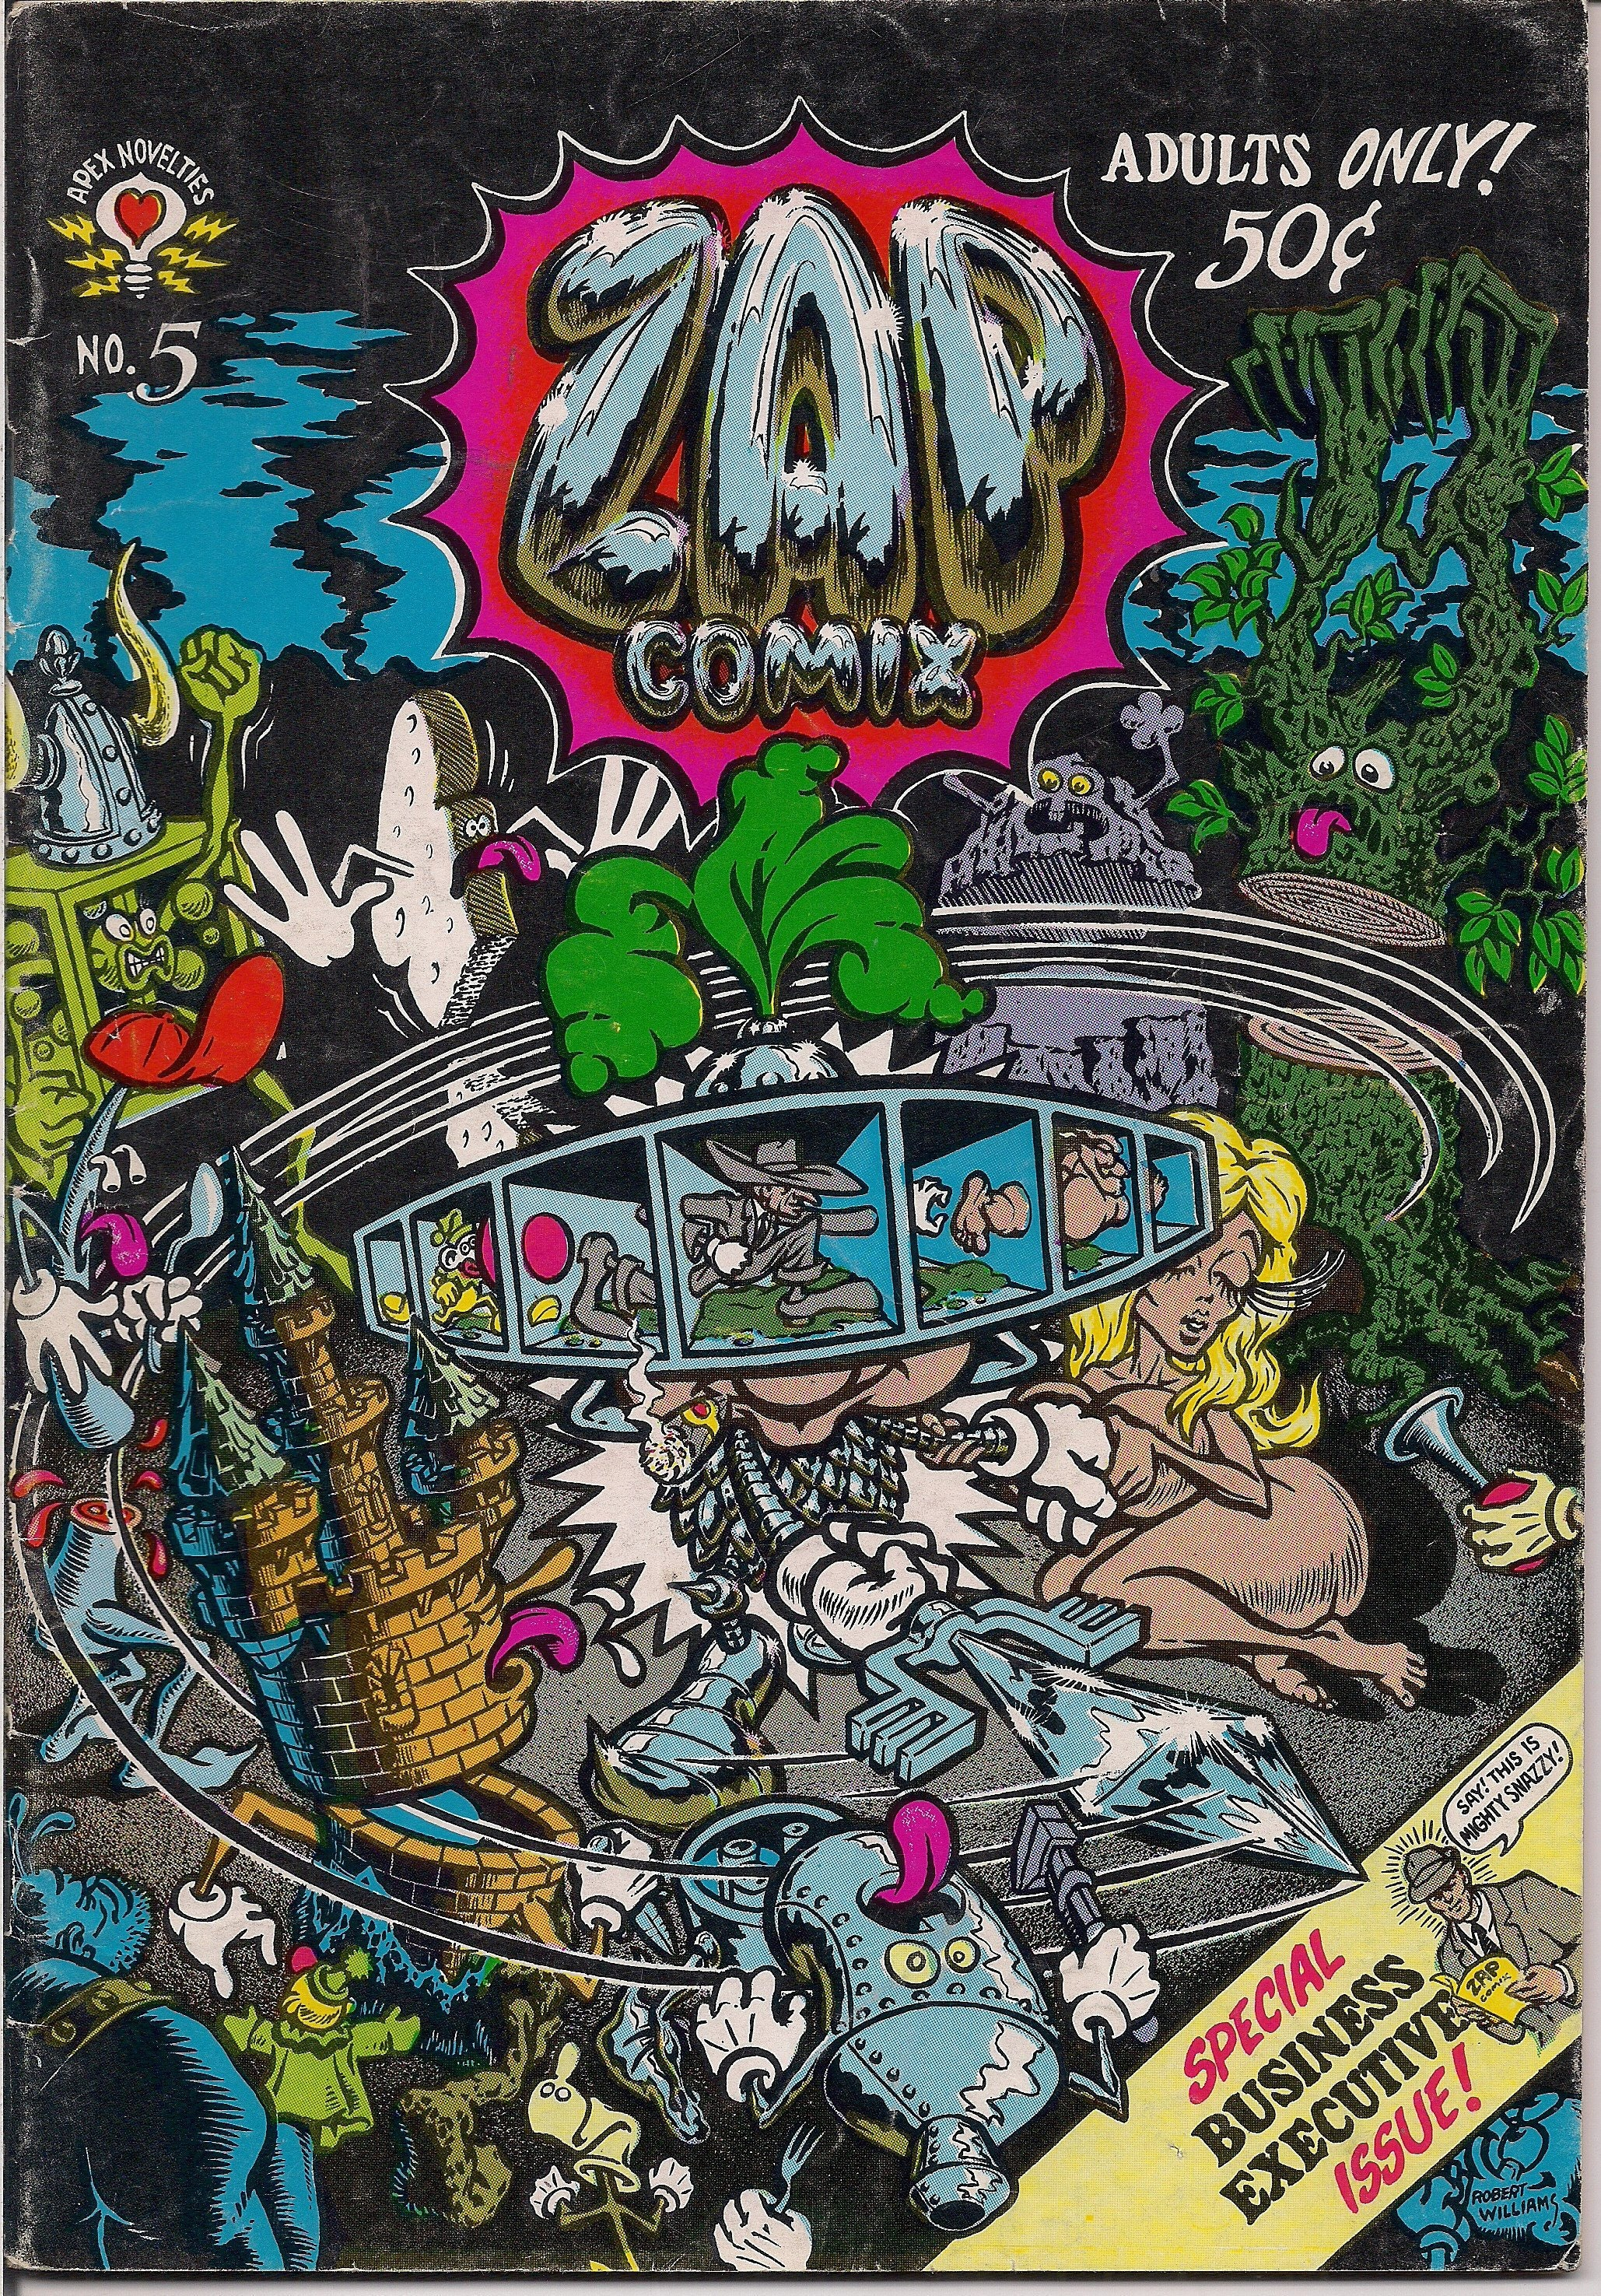 ZAP Comix #5 1st Robert CRUMB,(C) Moscoso,Robt Williams,Freak Bros,Wonder  Warthog, Apex Novelty ADULT Dope Drugs Sex Psychedelic Underground